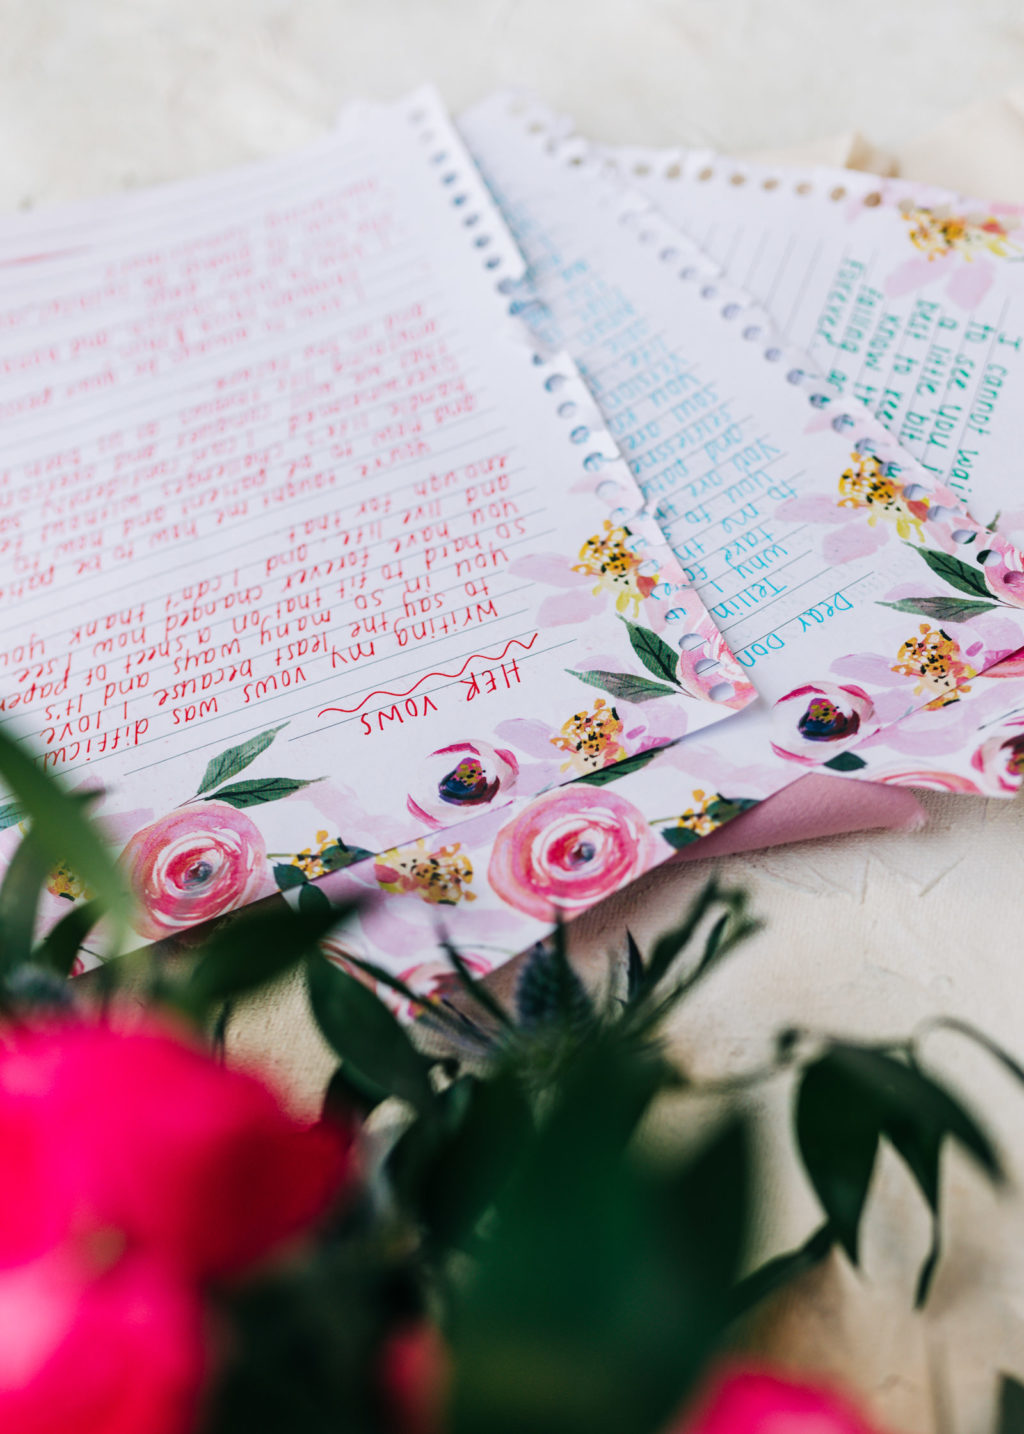 Wedding Day Written Vows | Couples Weeding Vows Written on Paper in Colorful Ink